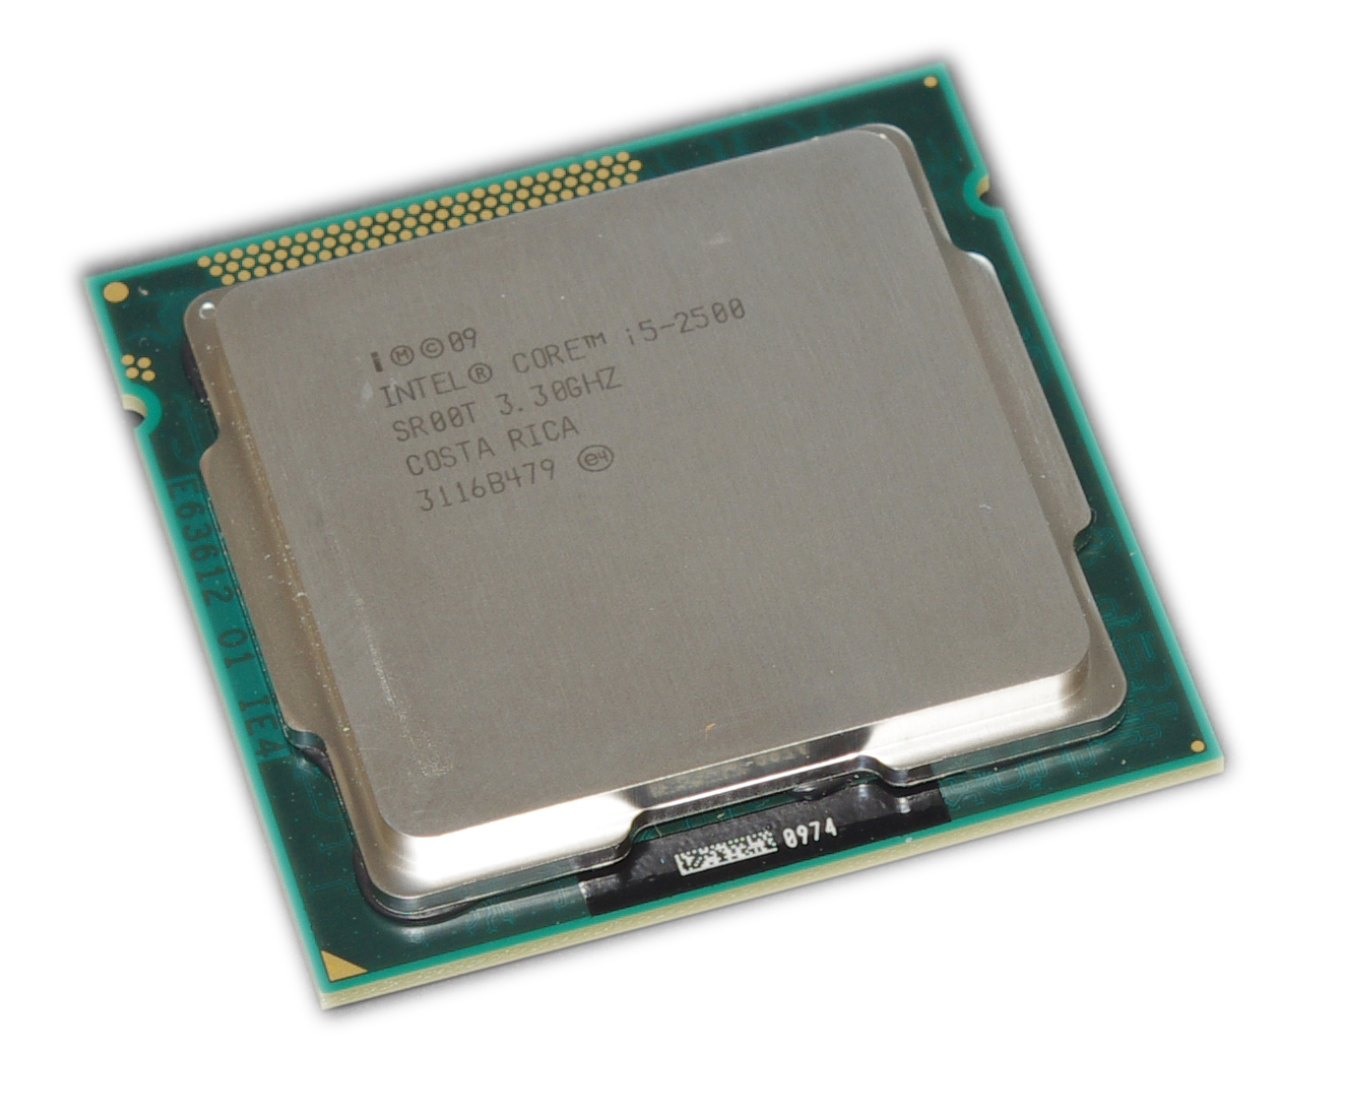 i5 2500K *Not my actual chip